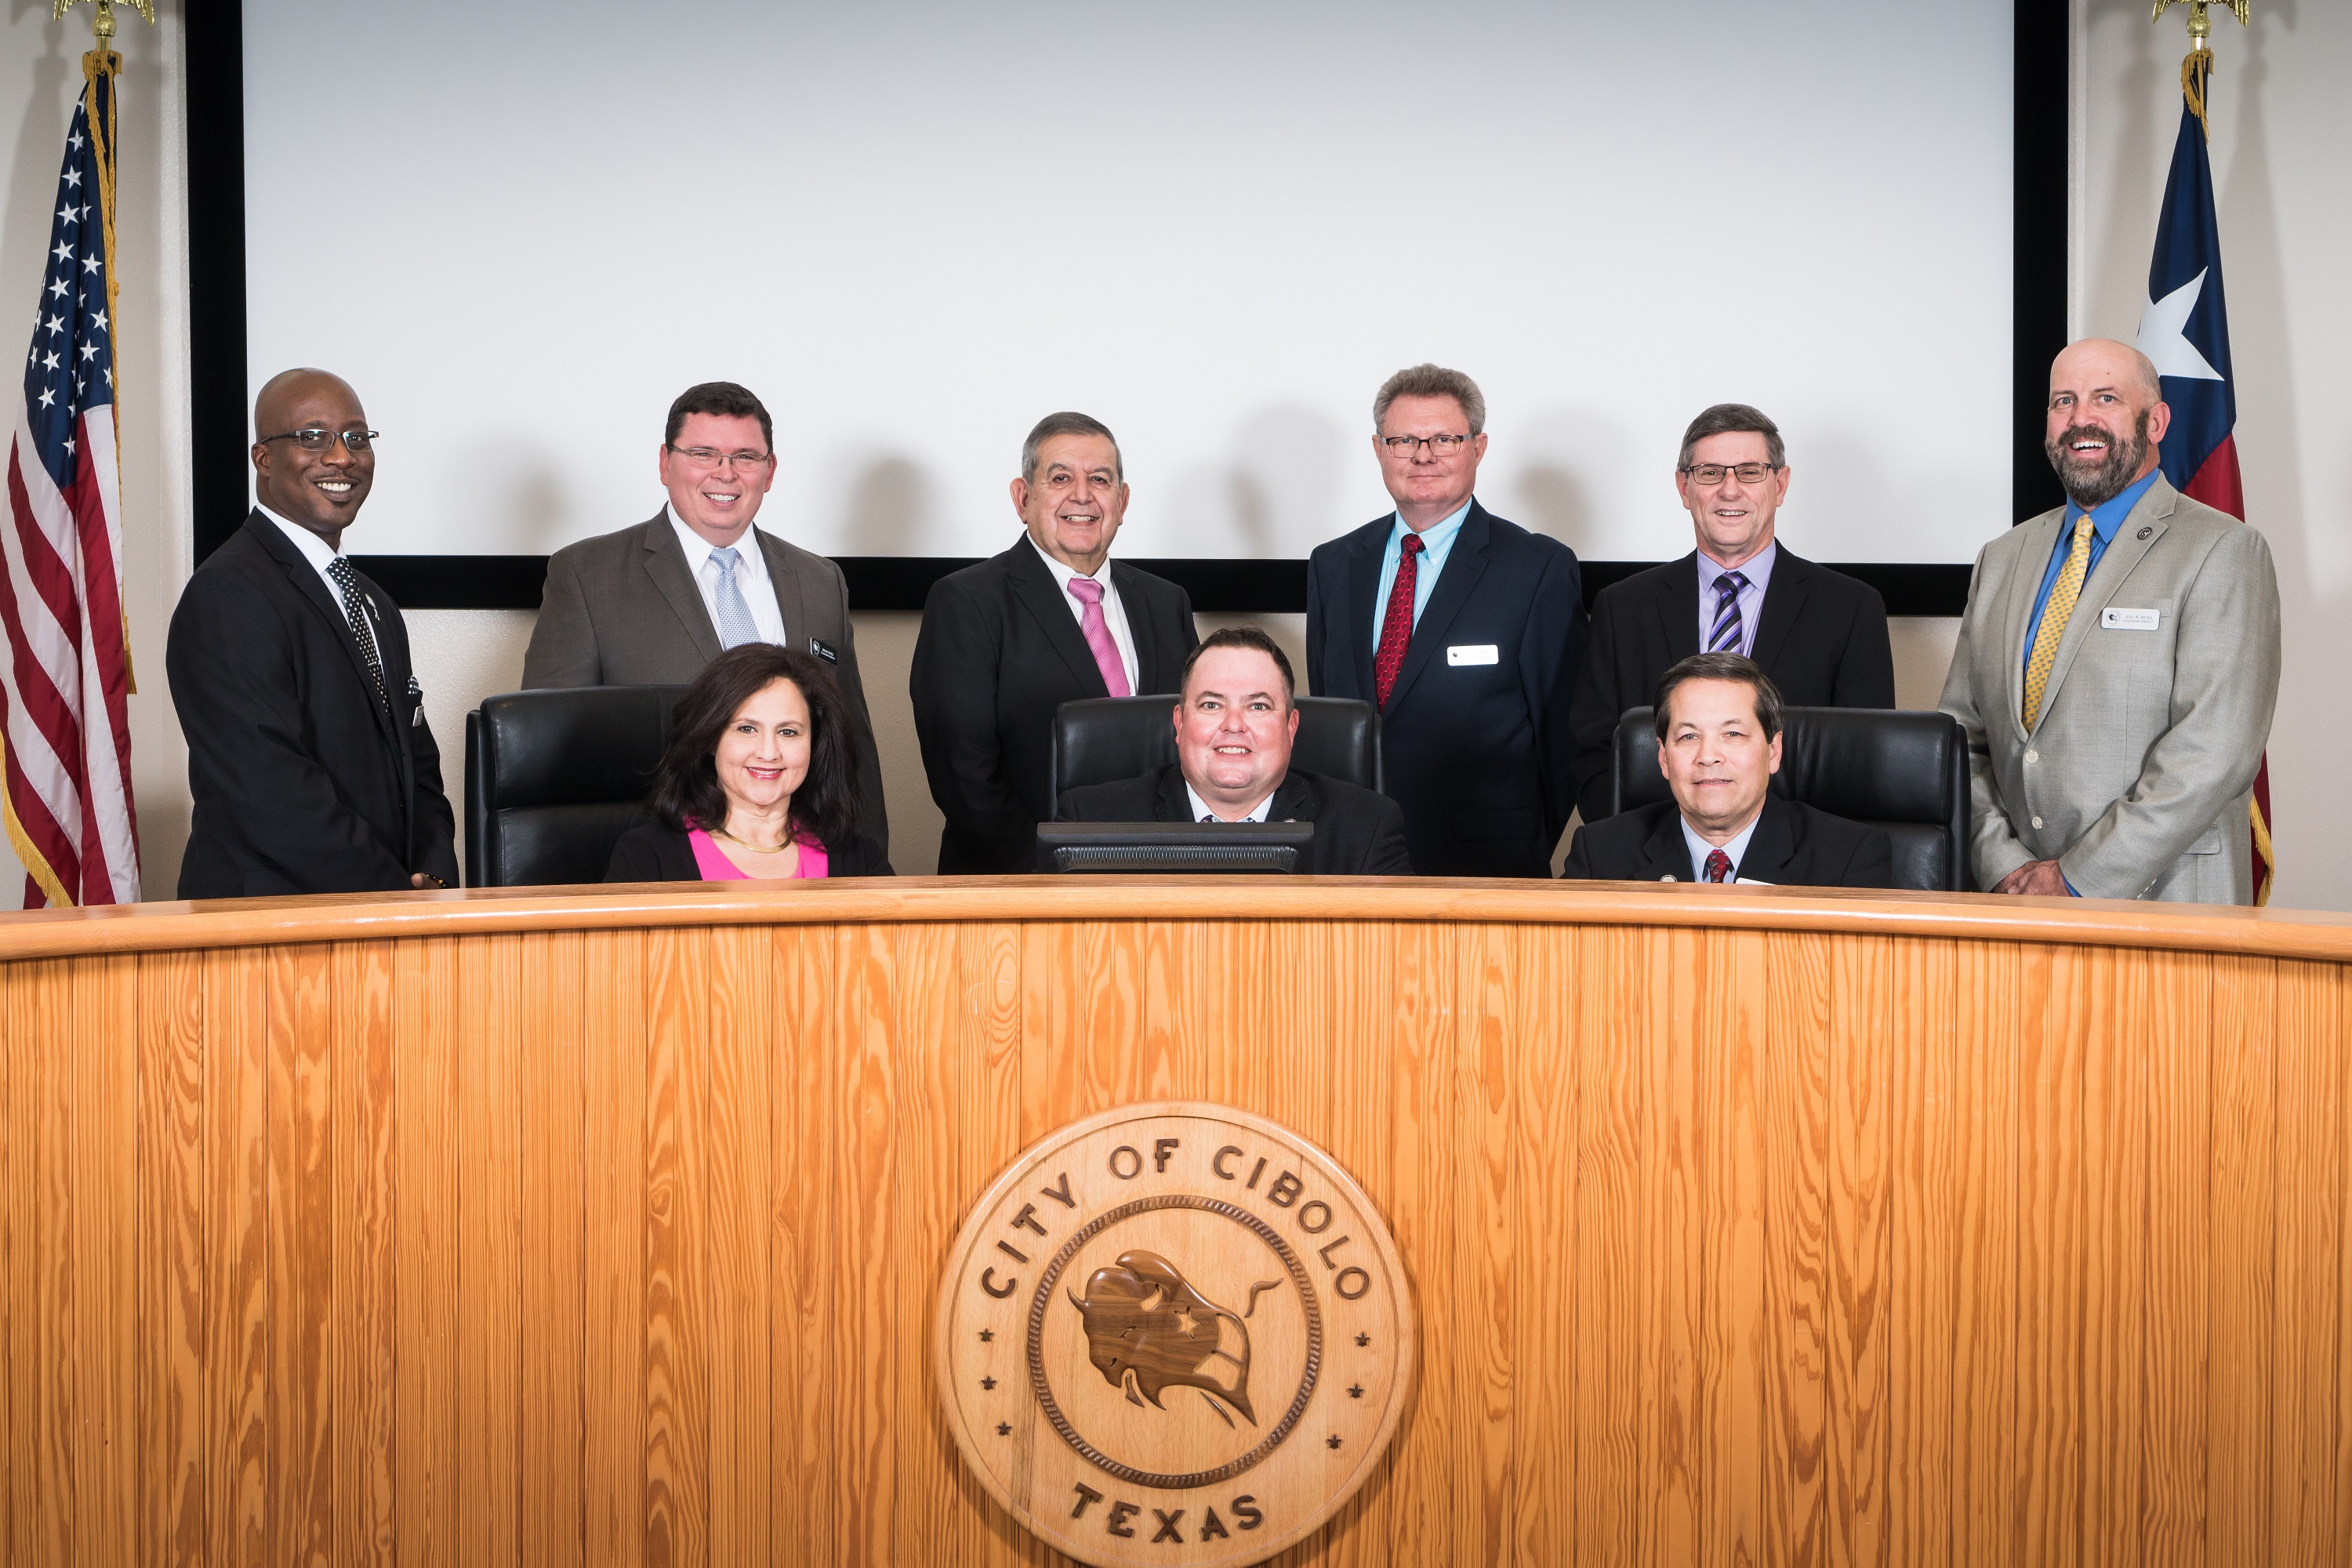 Cibolo City Council